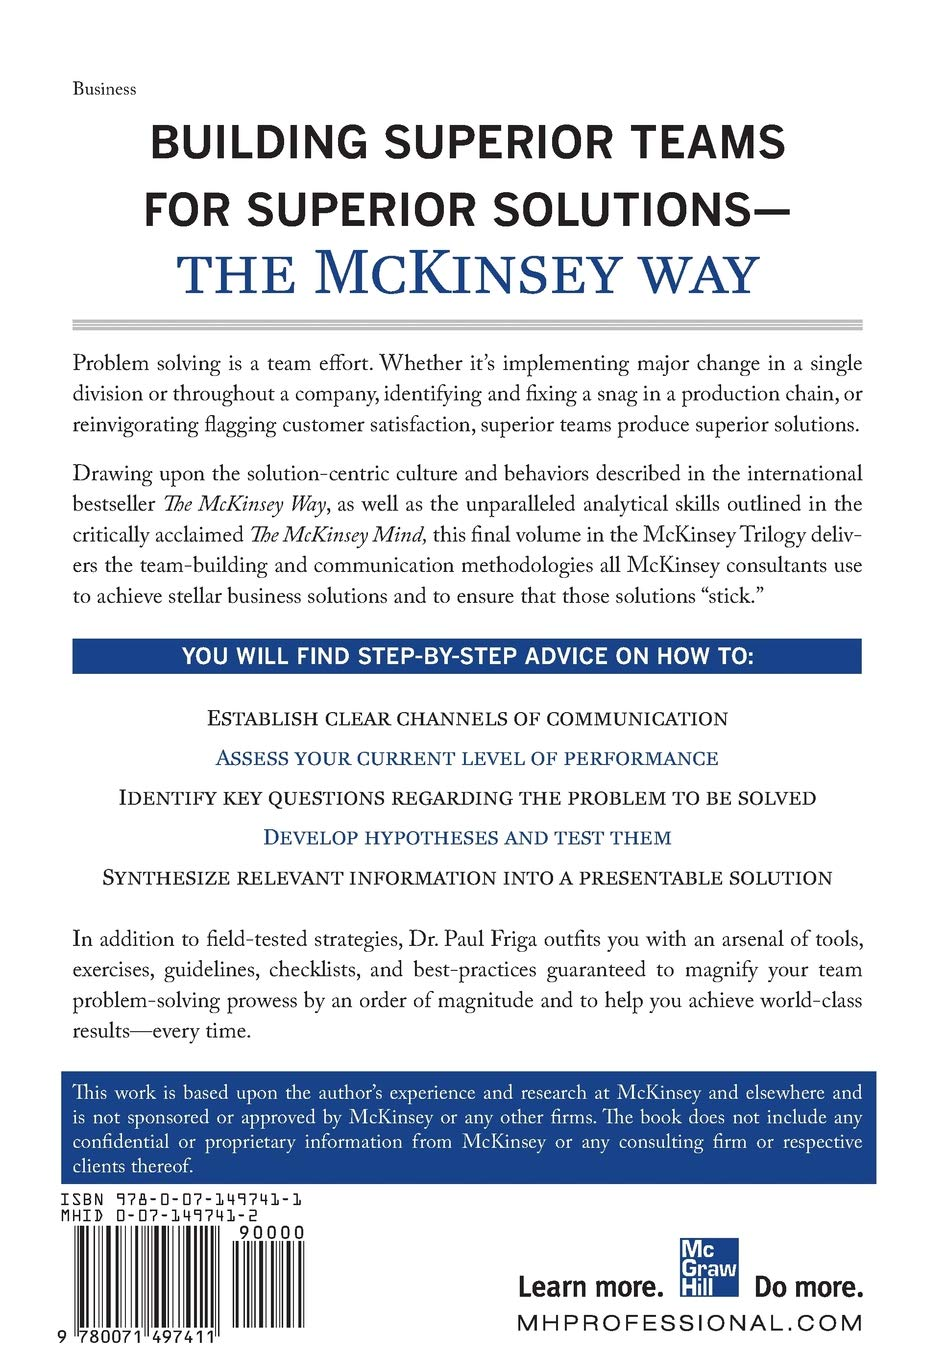 The McKinsey Engagement: A Powerful Toolkit For More